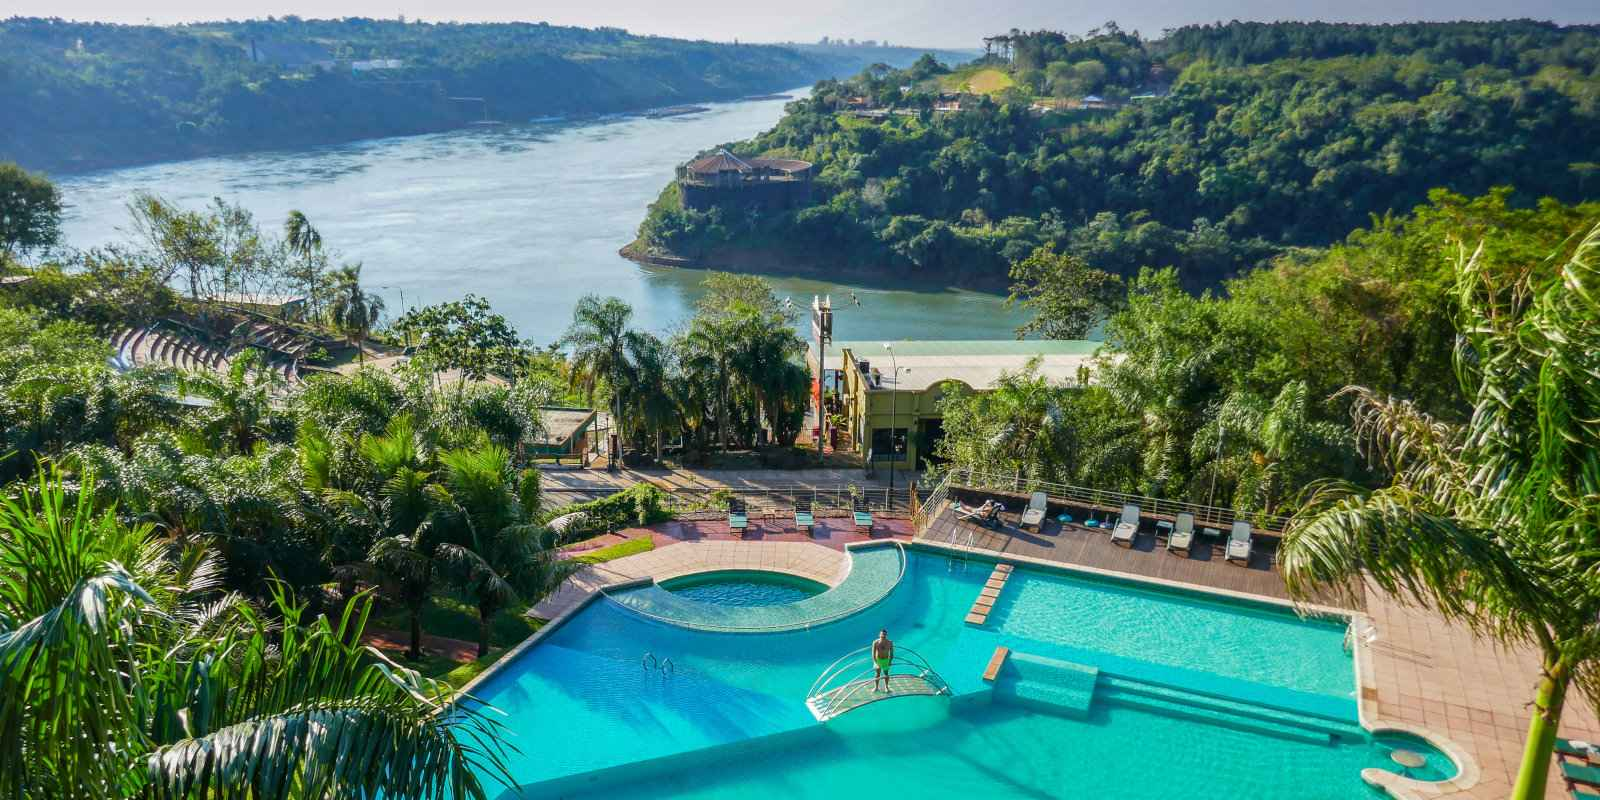 Incredible views from the gay friendly Amerian Portal Hotel in Puerto Iguazú.